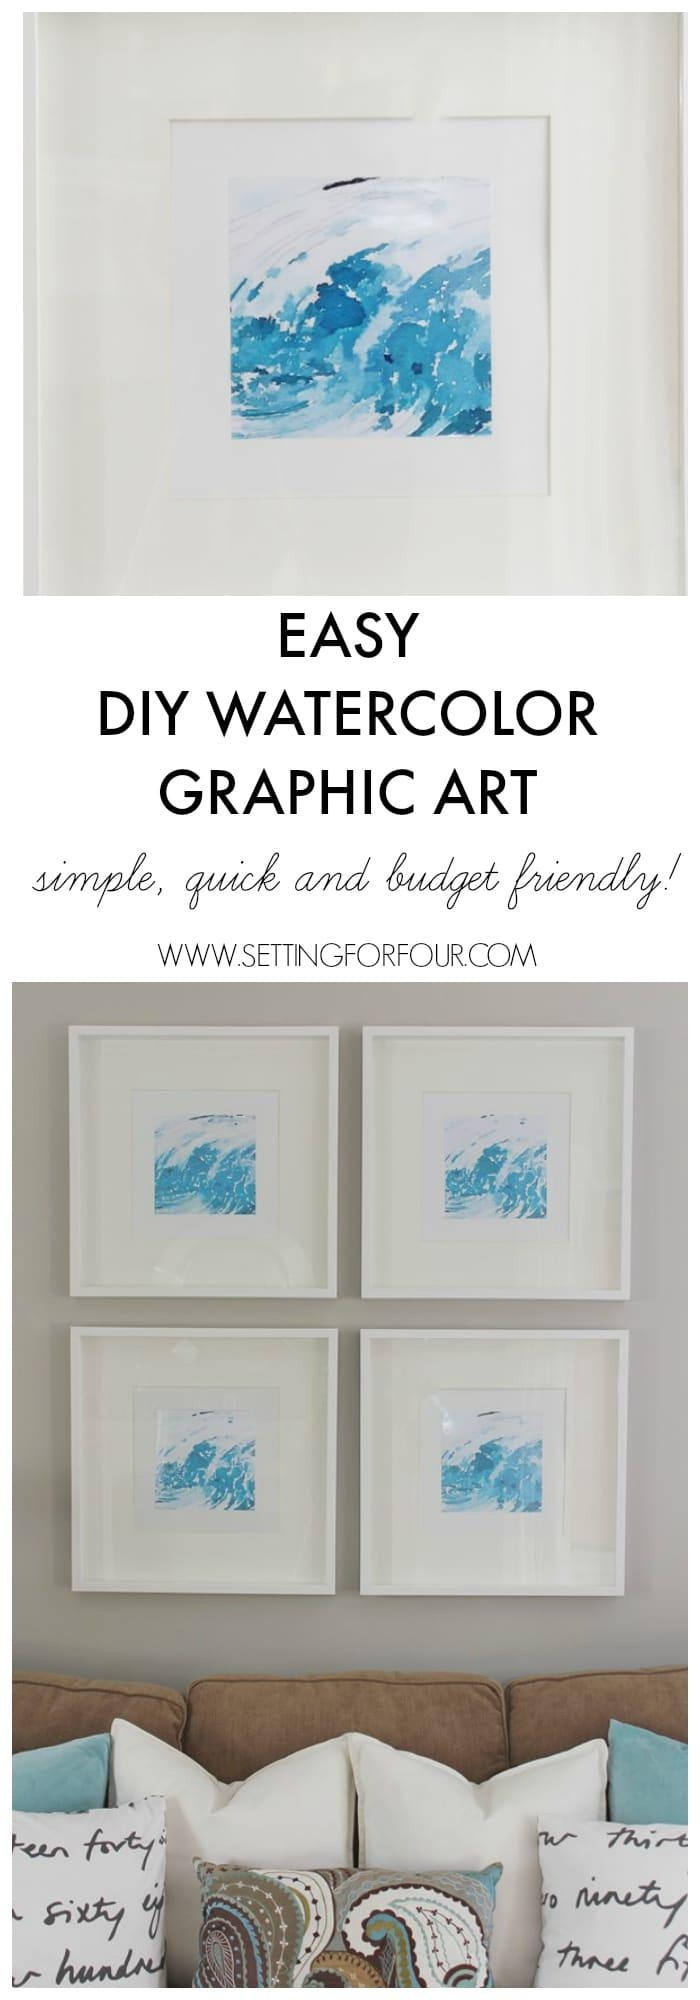 Easy Diy Watercolor Abstract Wall Art – Setting For Four For Diy Watercolor Wall Art (Image 15 of 20)